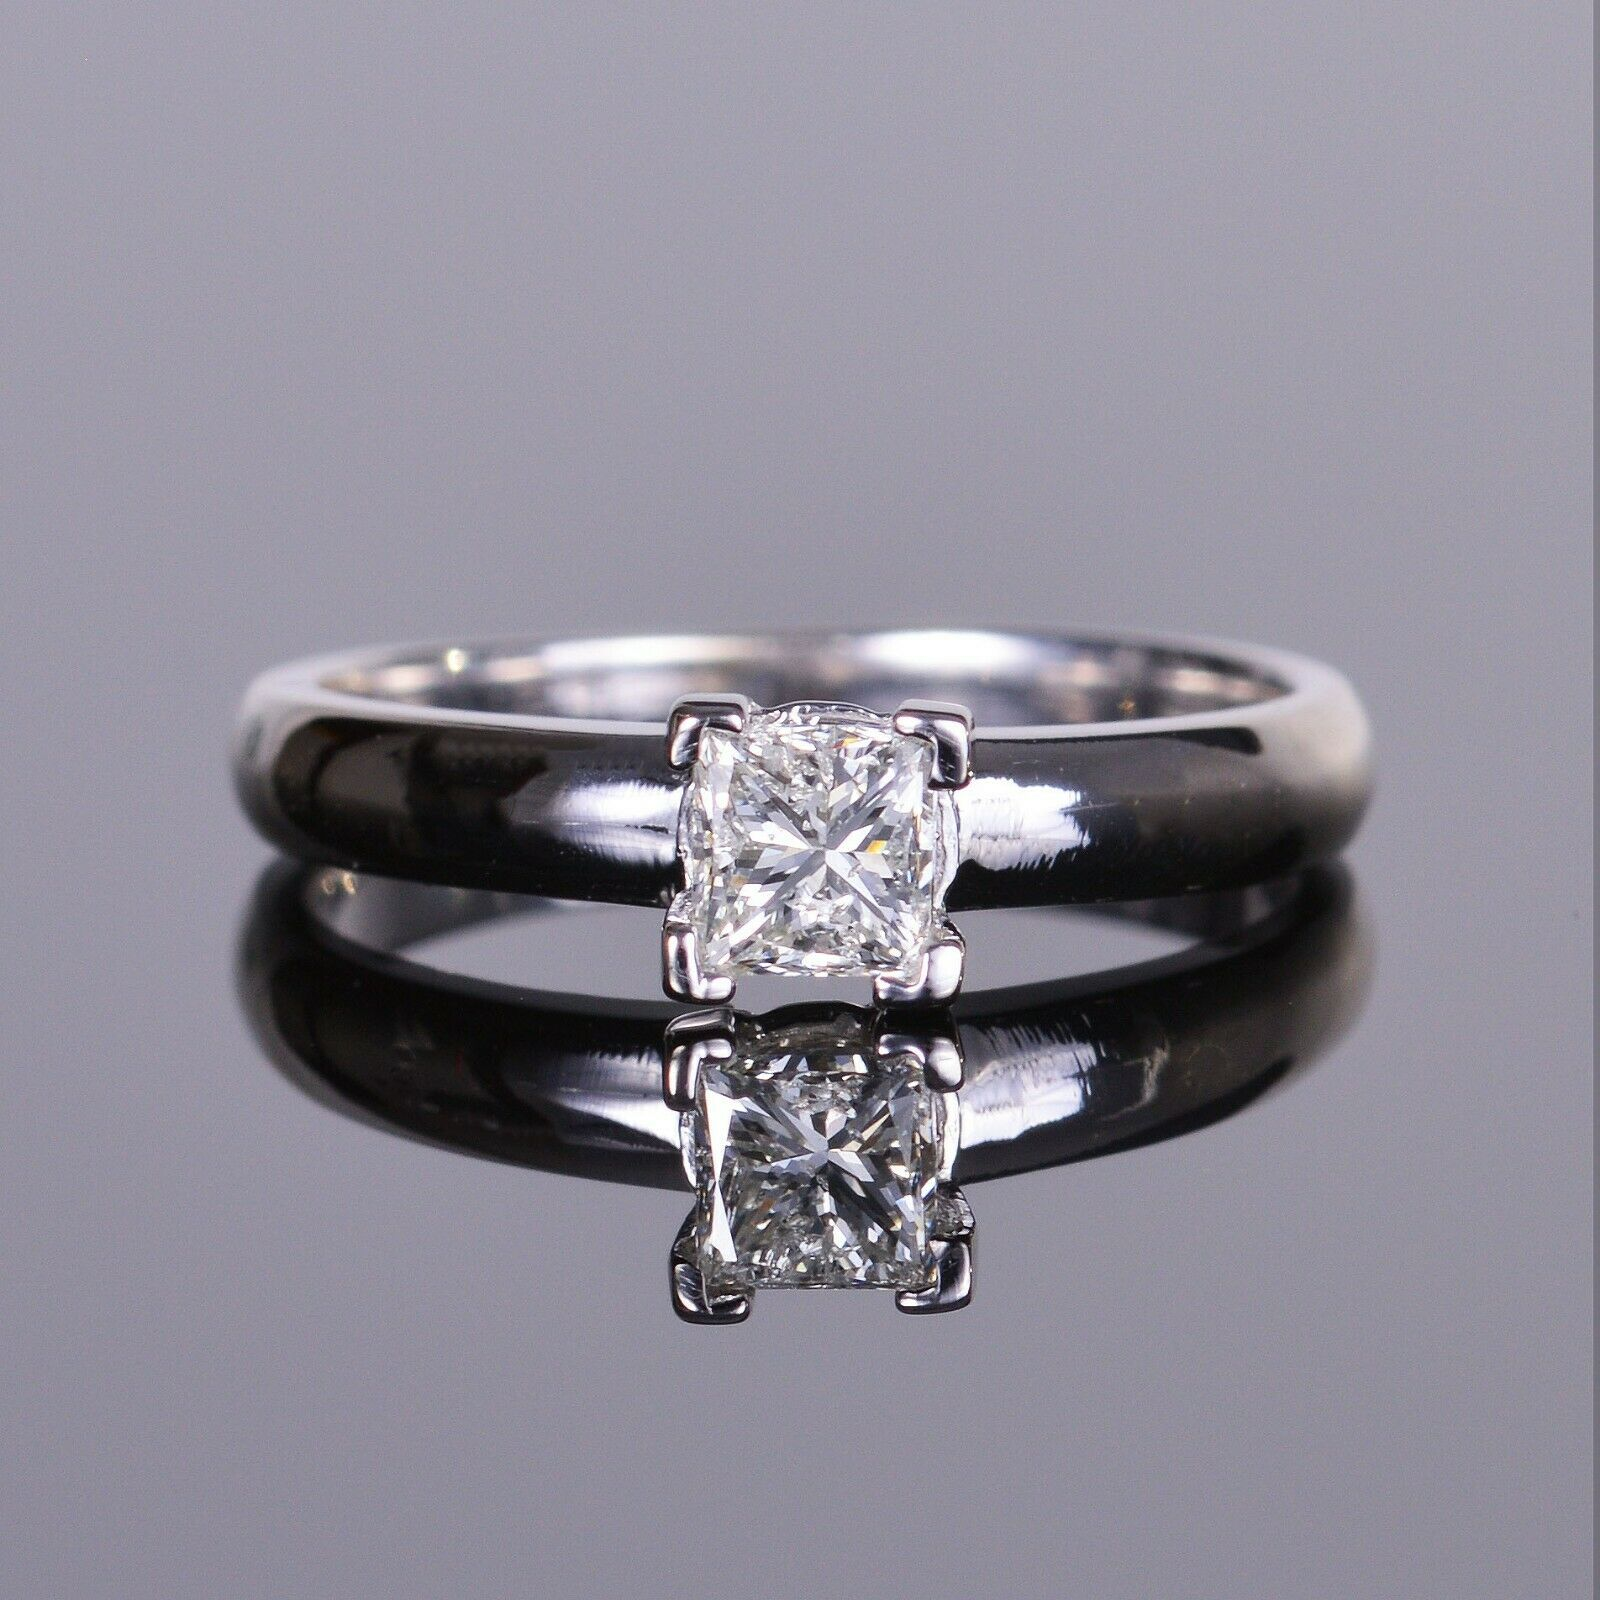 Princess Diamond Solitaire Engagement Ring in 18k WG